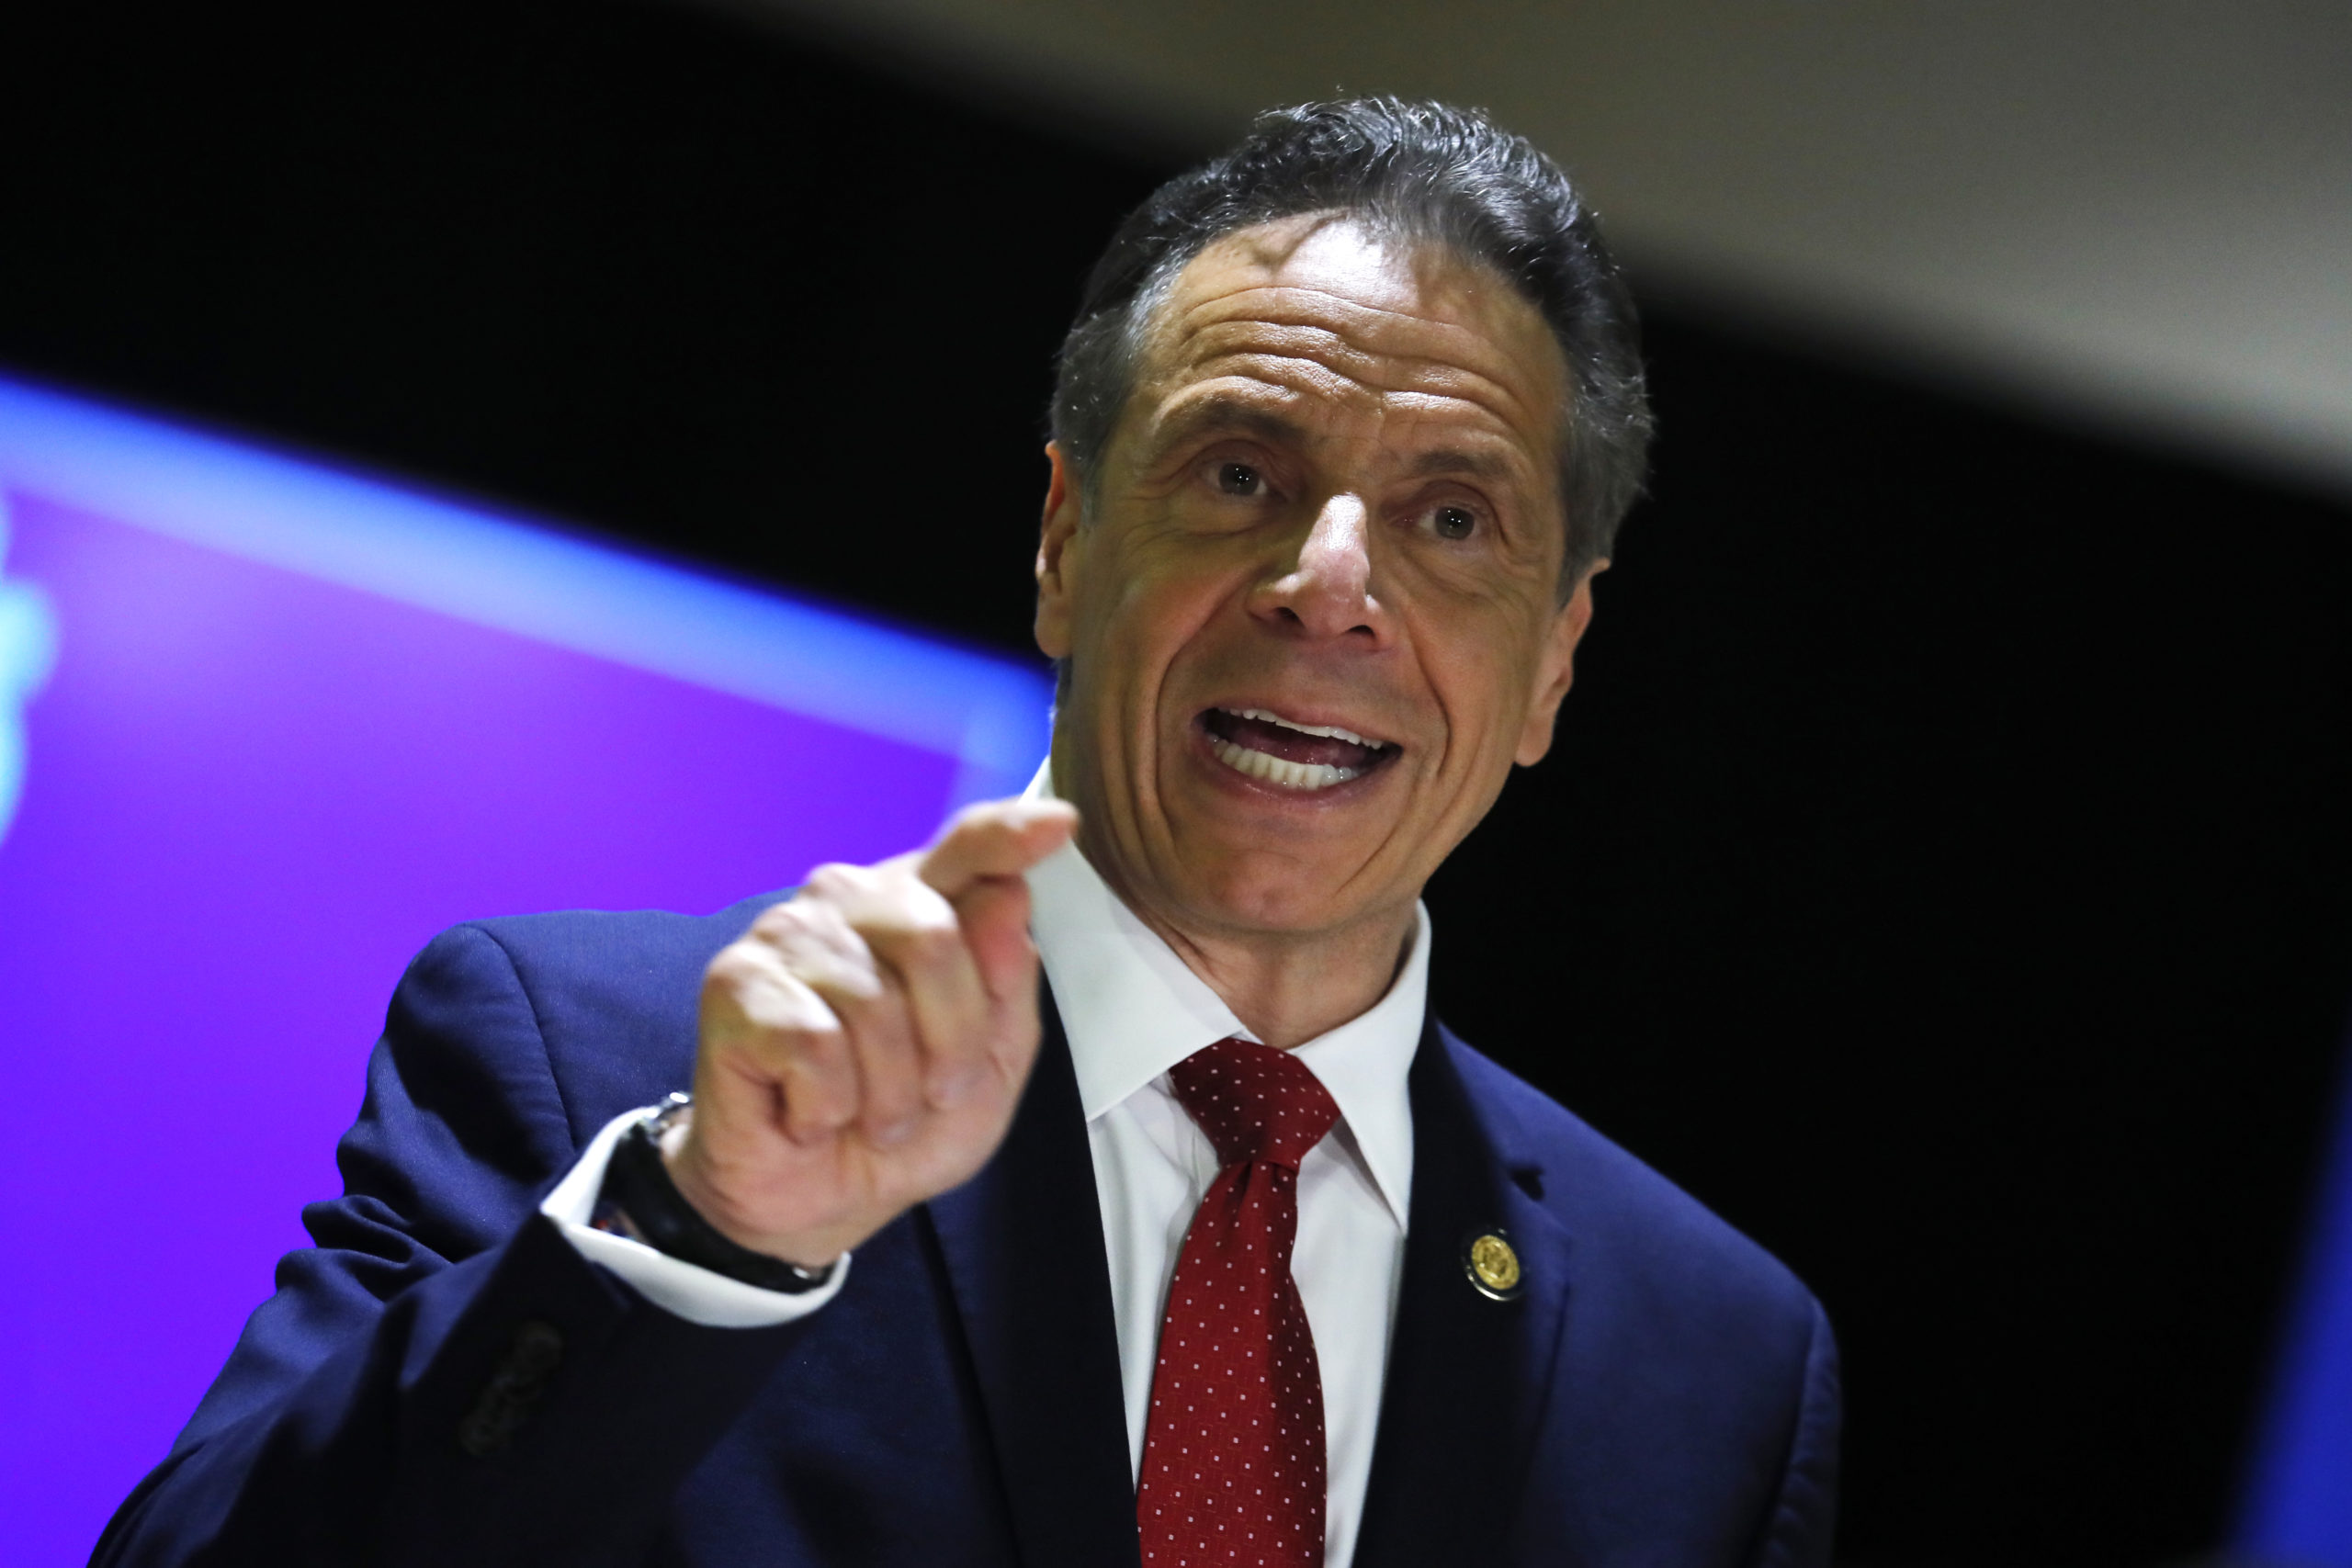 New York Governor Andrew Cuomo speaks at an event to announce five new walk-in pop-up vaccination sites for New York City Bodega, grocery store and supermarket workers amid the coronavirus disease (COVID-19) pandemic, in the Harlem section of Manhattan on April 23, 2021 in New York City. (Mike Segar-Pool/Getty Images)